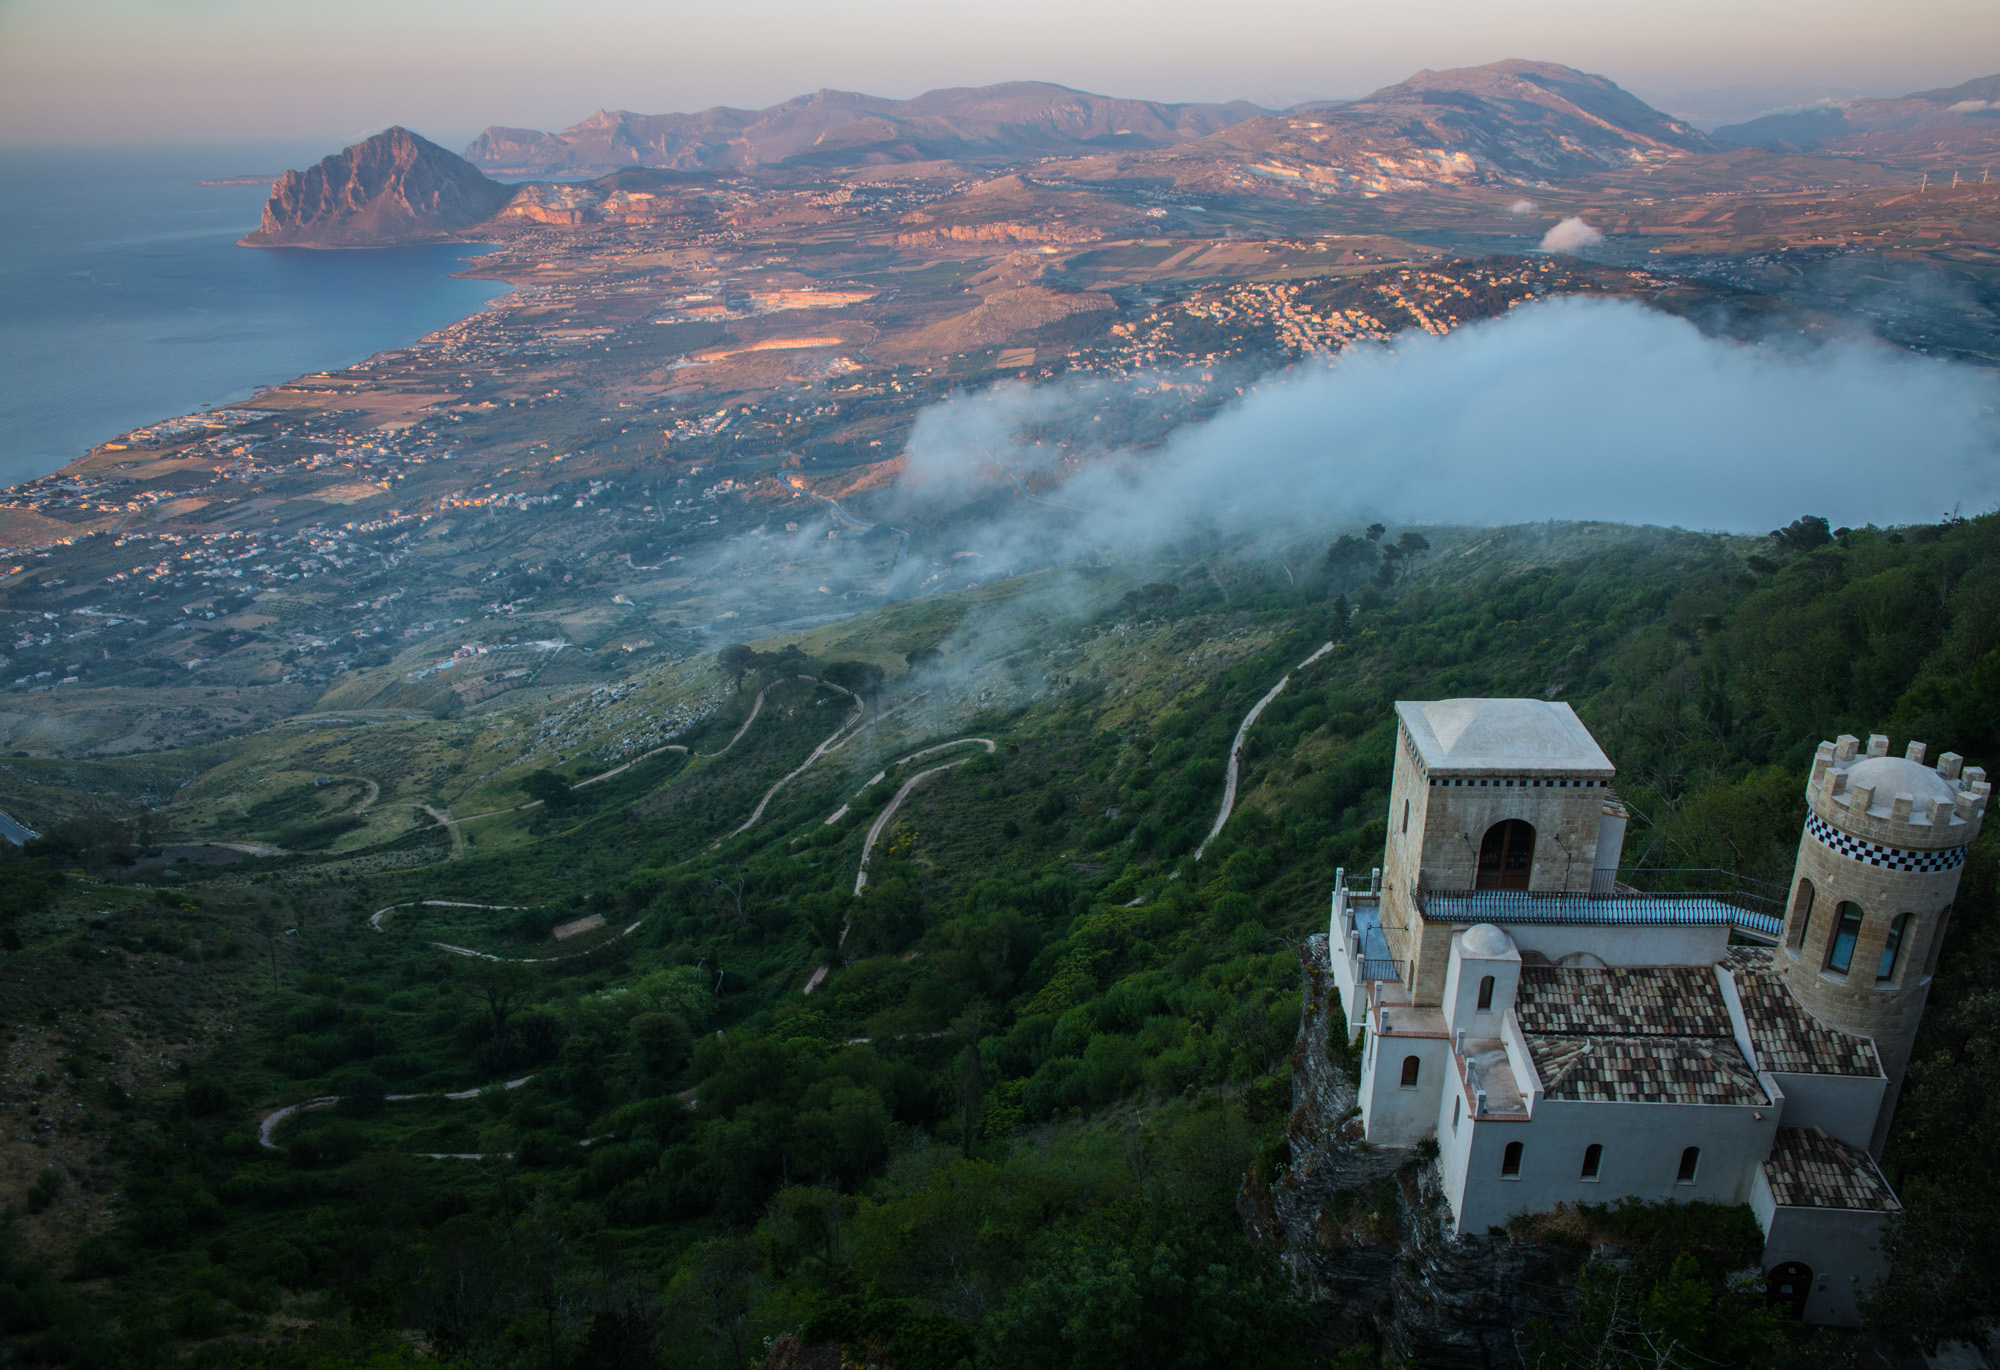 The top of Erice, Sicily, where I experienced one of the most stunning sunsets in May